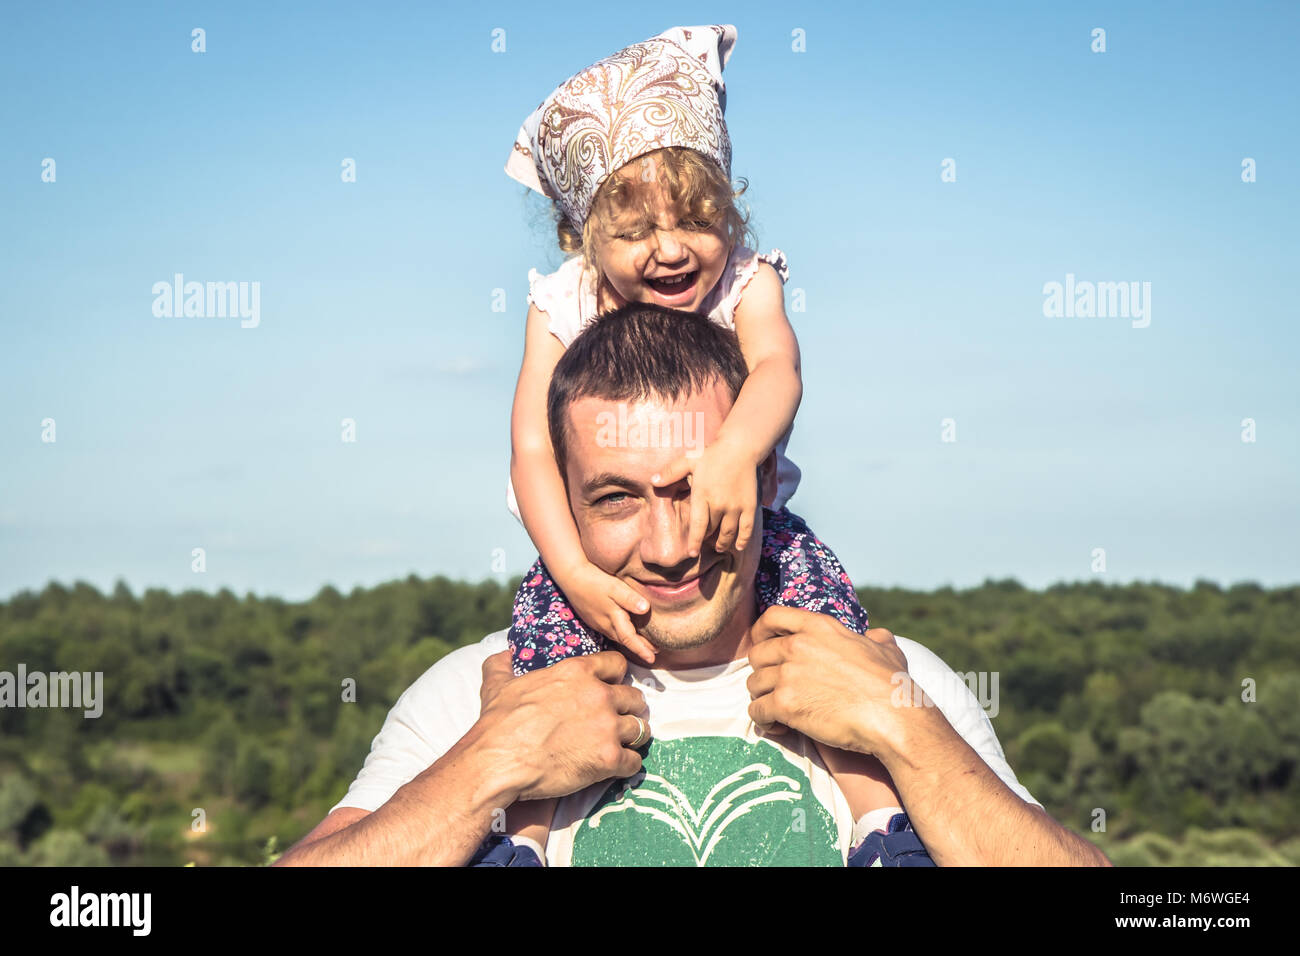 Father cute daughter having fun together as family lifestyle portrait in front of  blue sky. Happy father holding - Stock Image